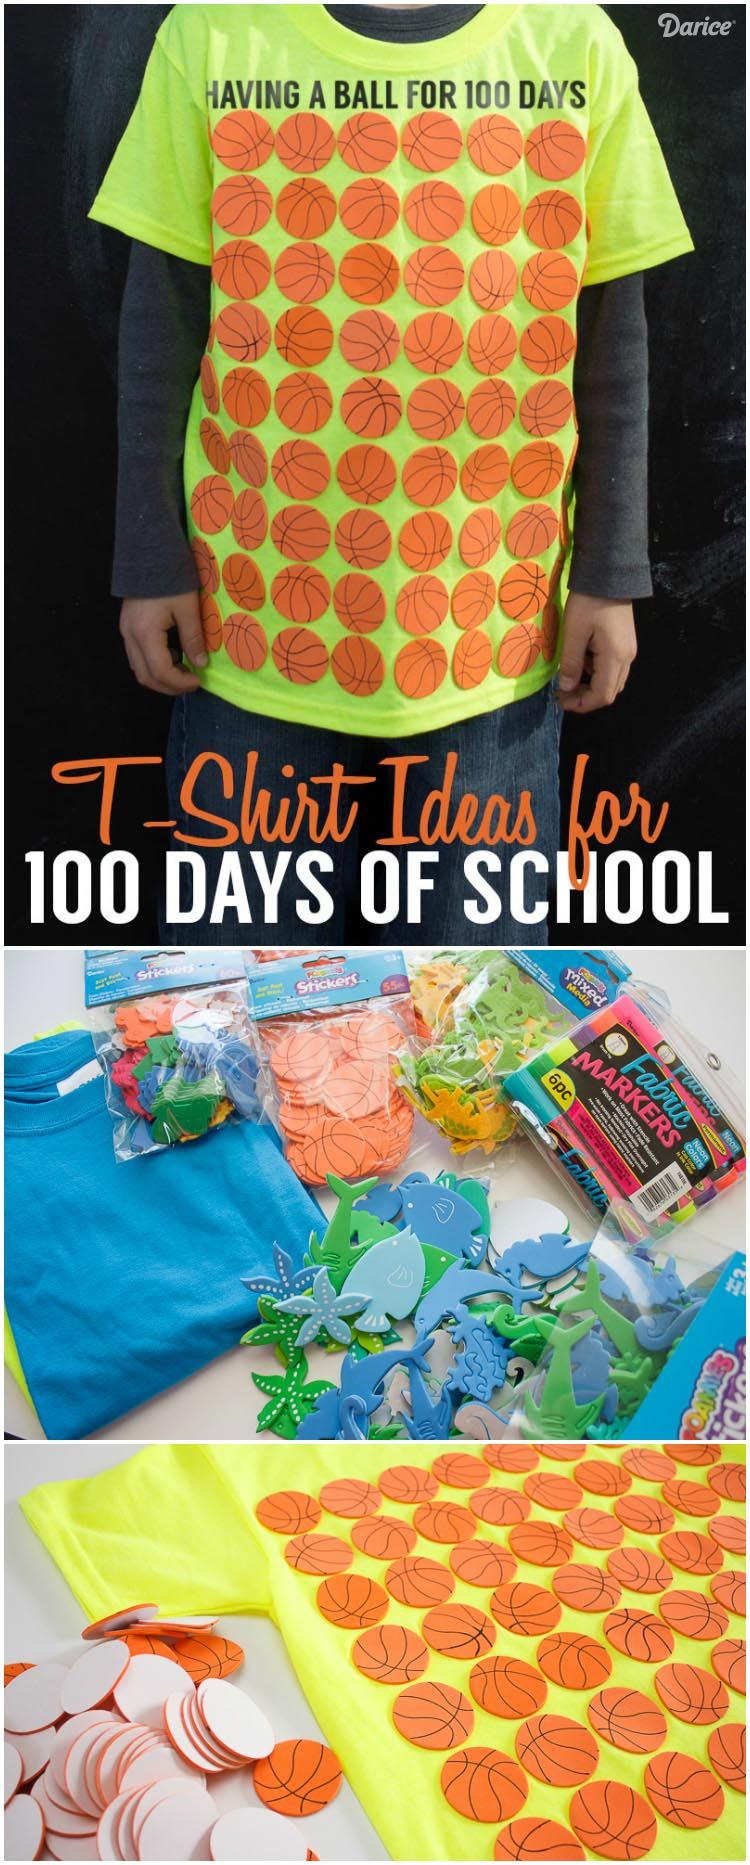 T shirt design ideas for schools - 100 Days Of School Shirt Ideas For Students Darice